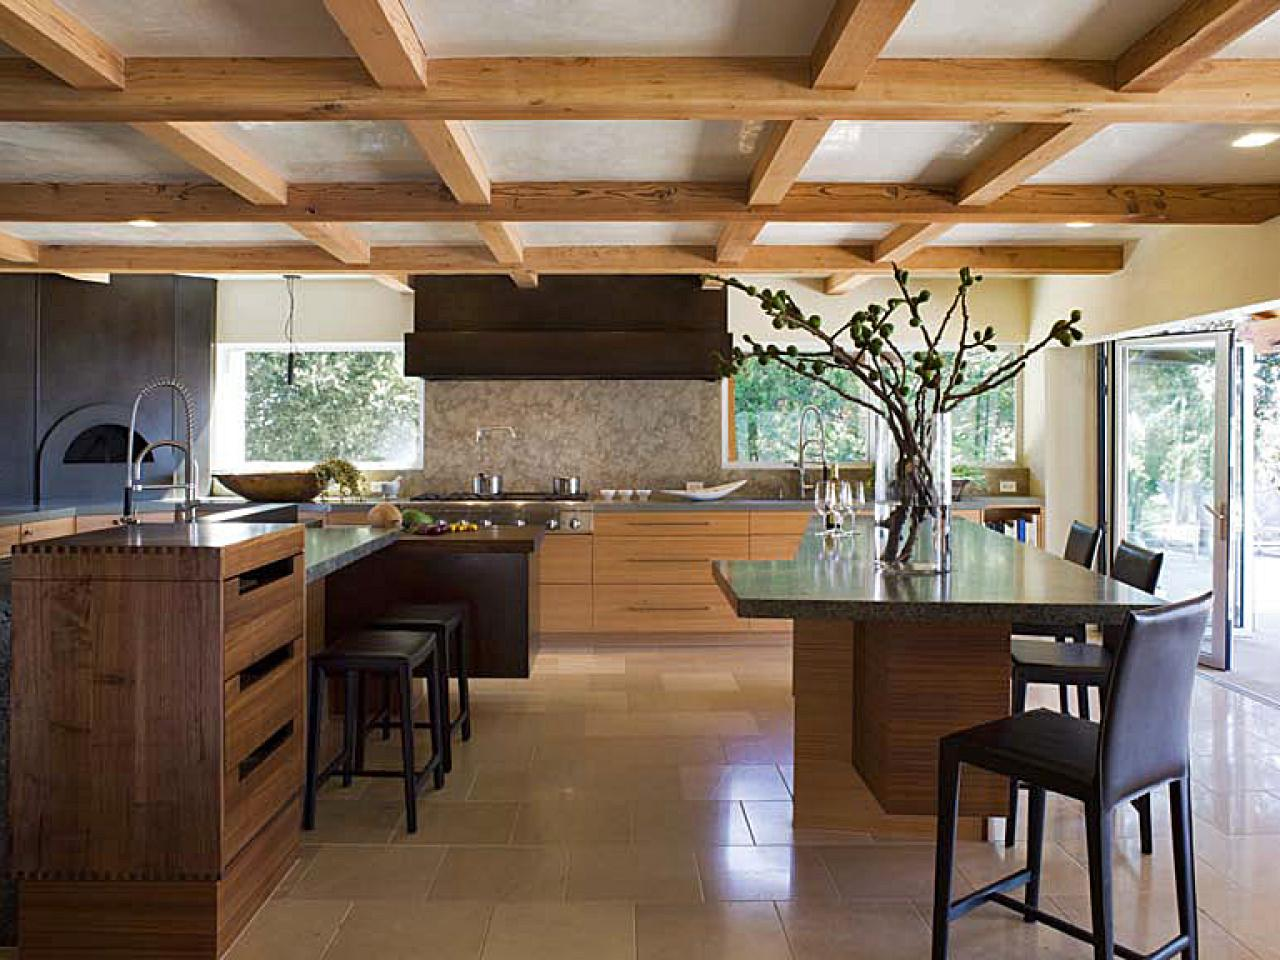 CI_David_Duncan_Livingston-kitchen-island_s4x3.jpg.rend.